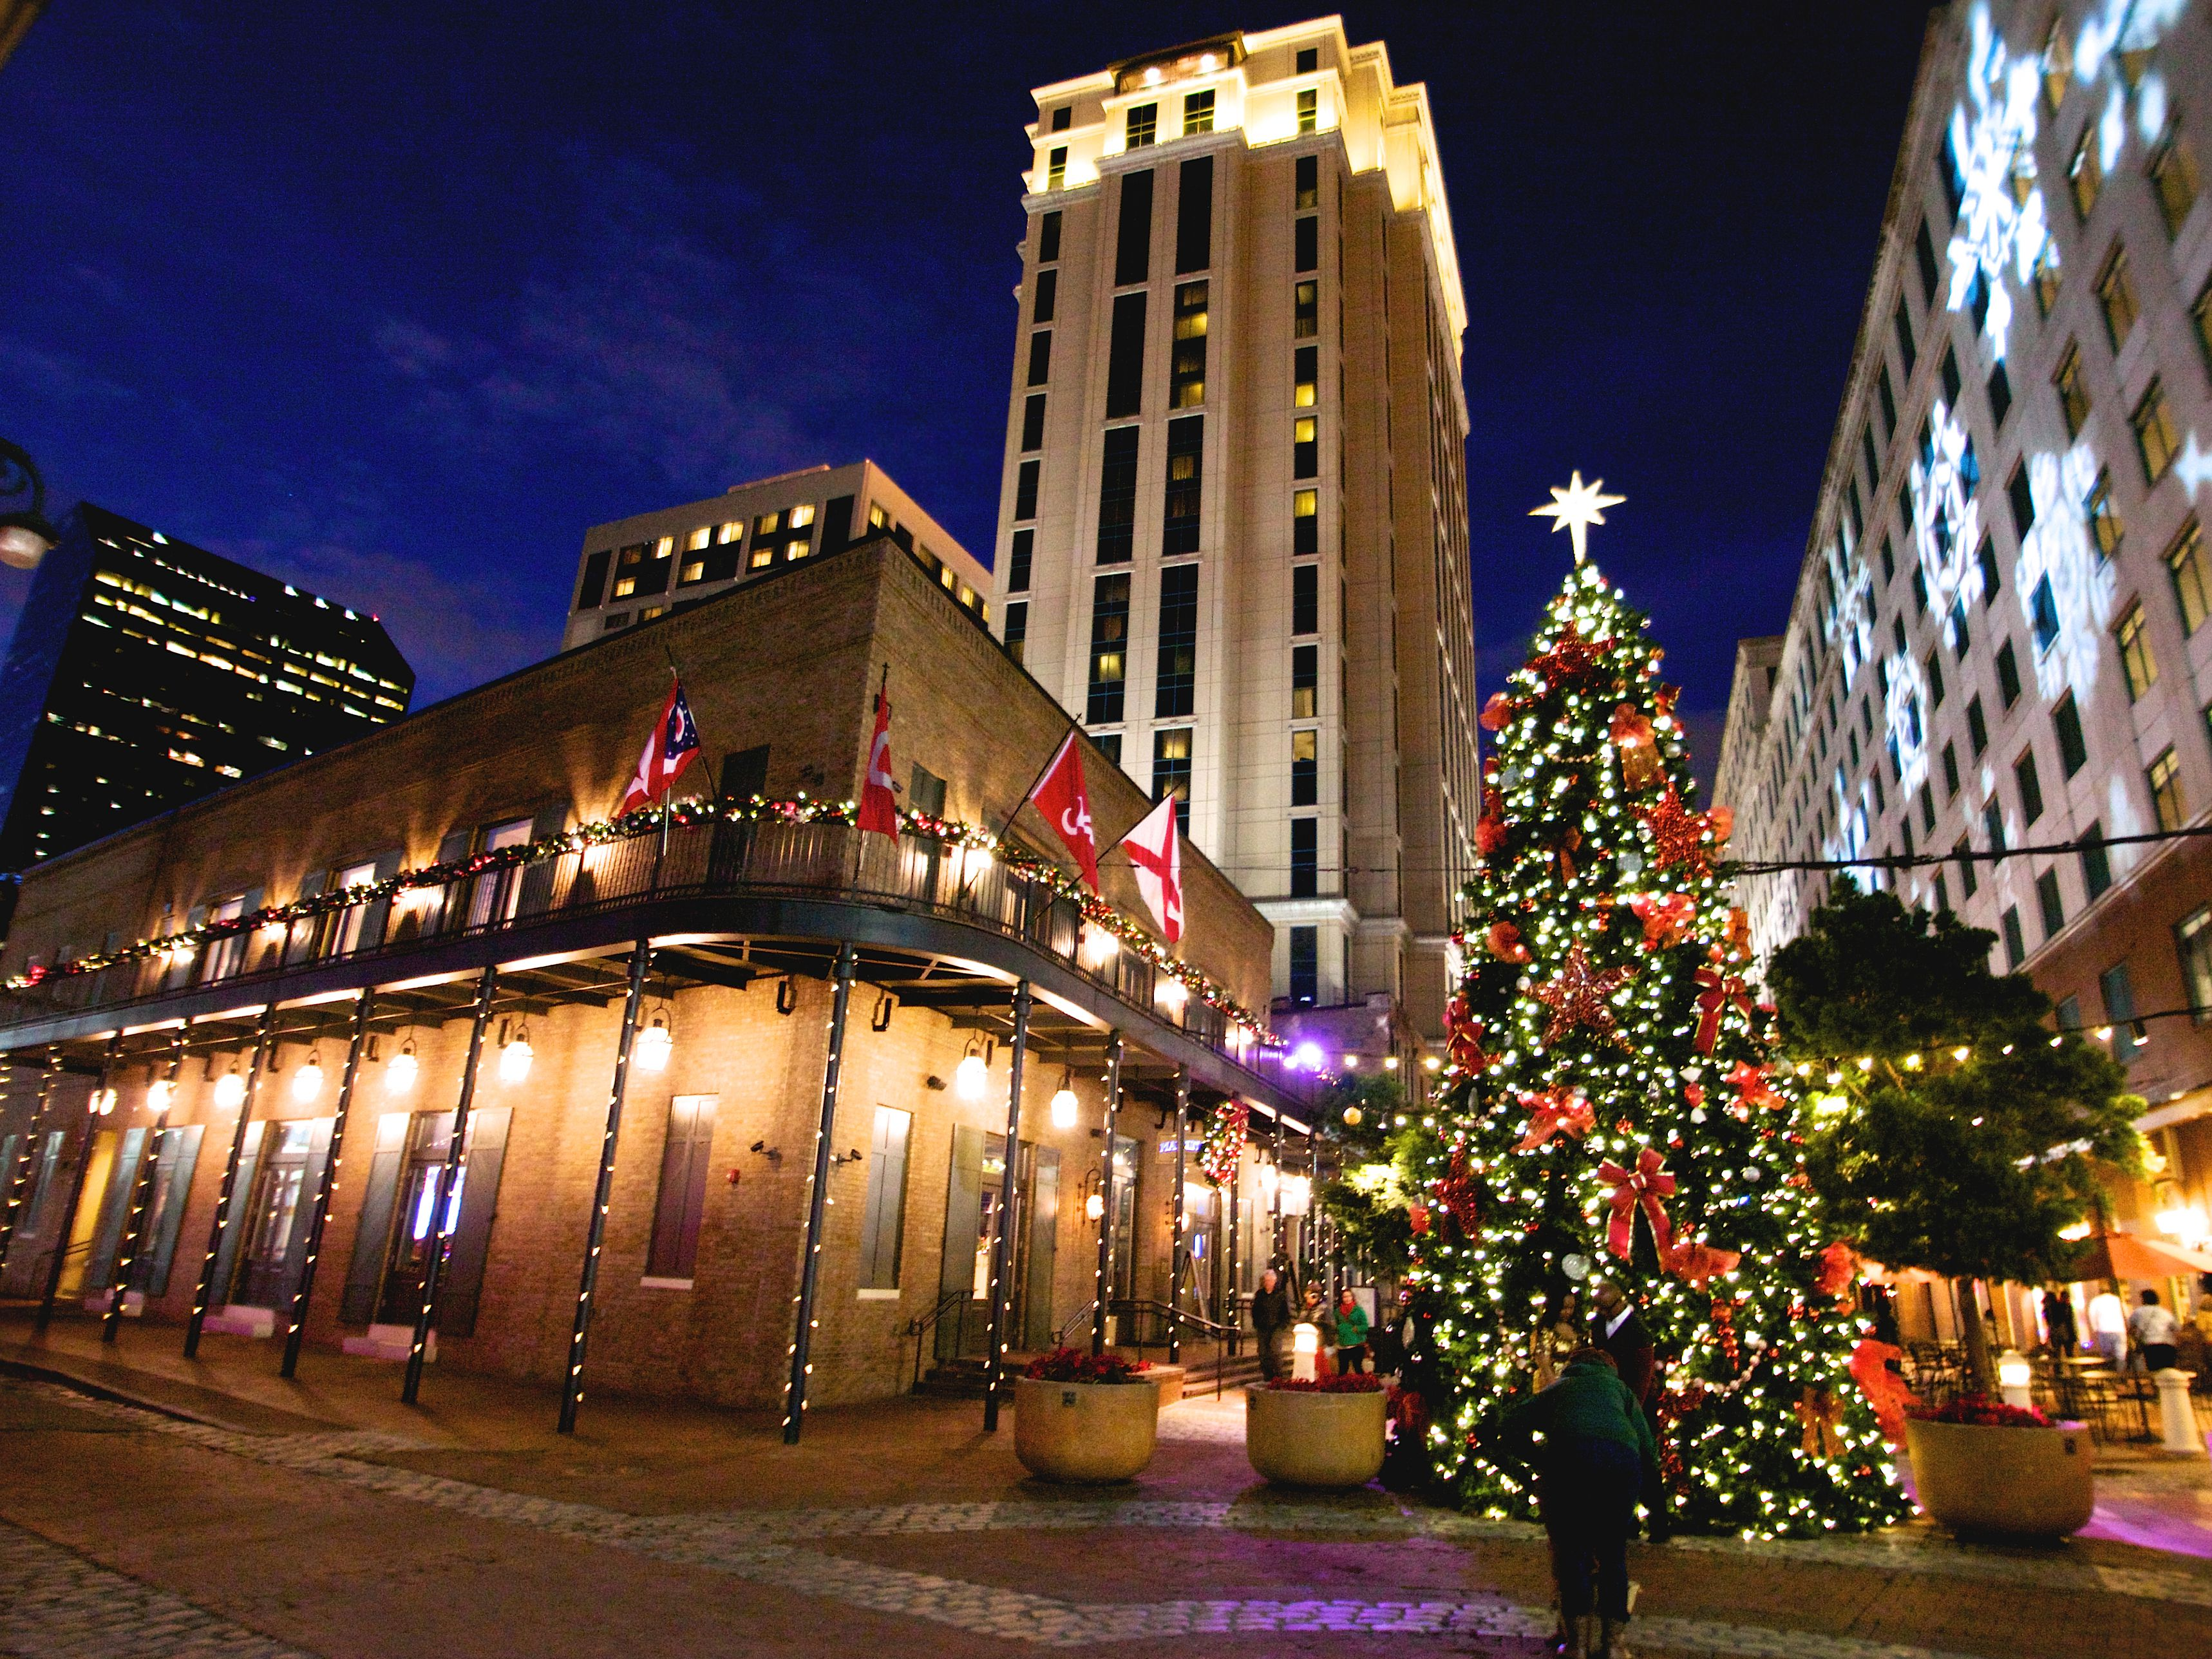 Christmas Forecast 2020 For New Orleans December in New Orleans: Weather and Event Guide